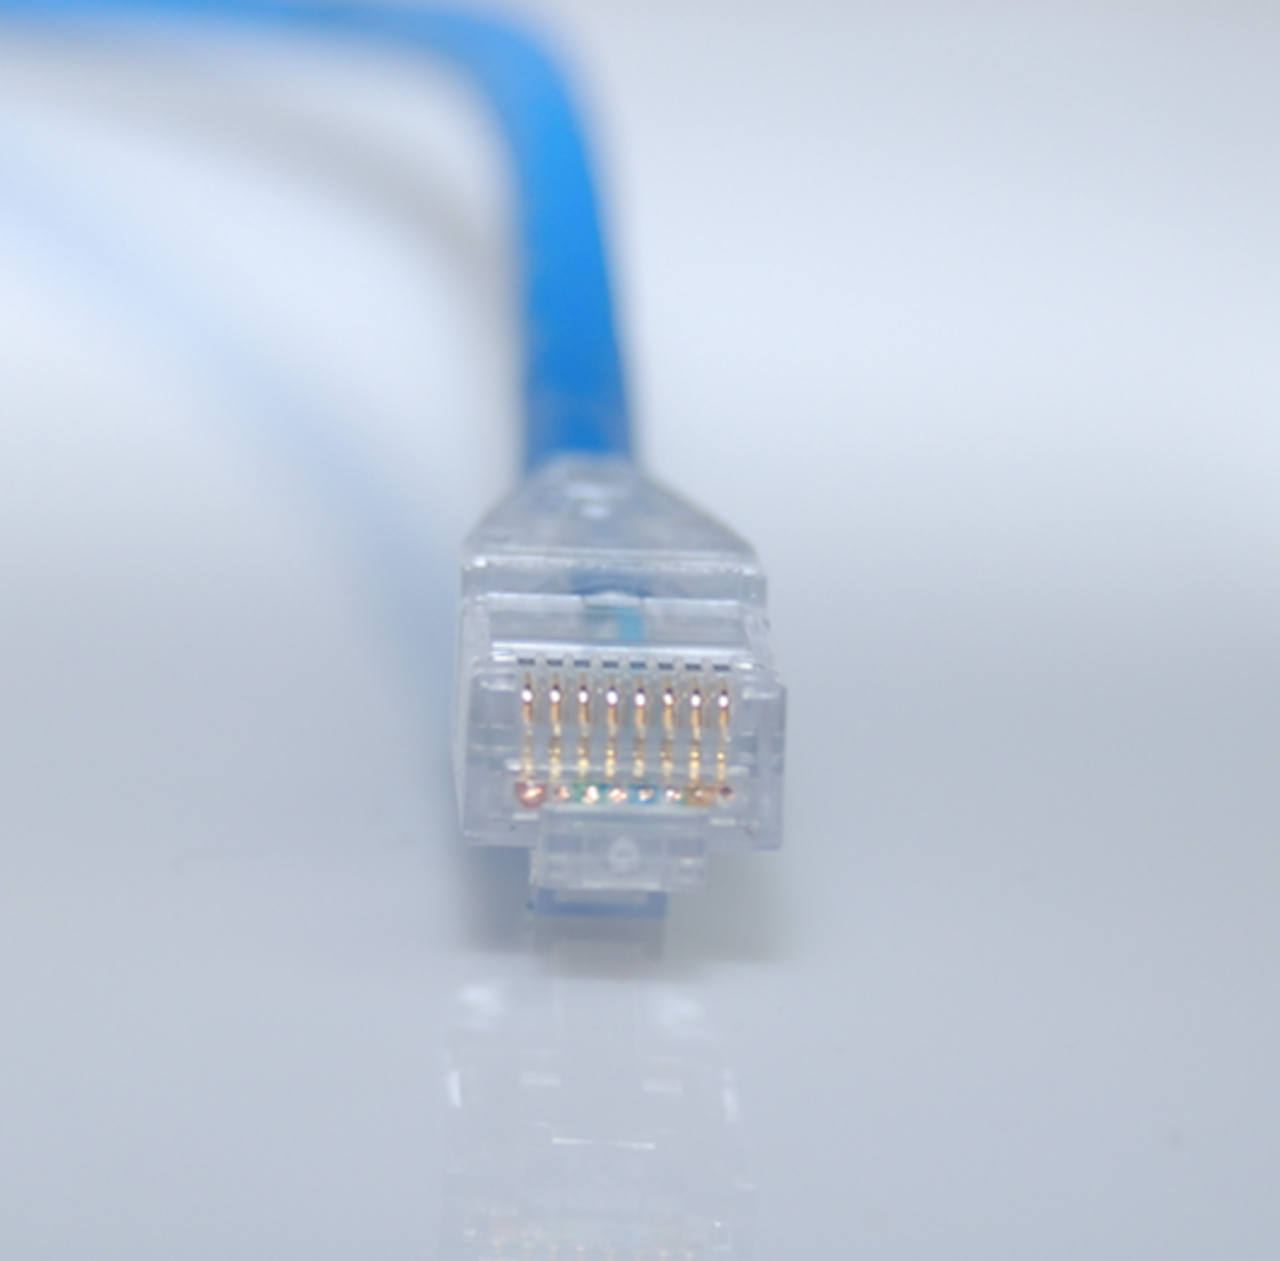 CAT 6 Snagless UTP Ethernet Patch Cable